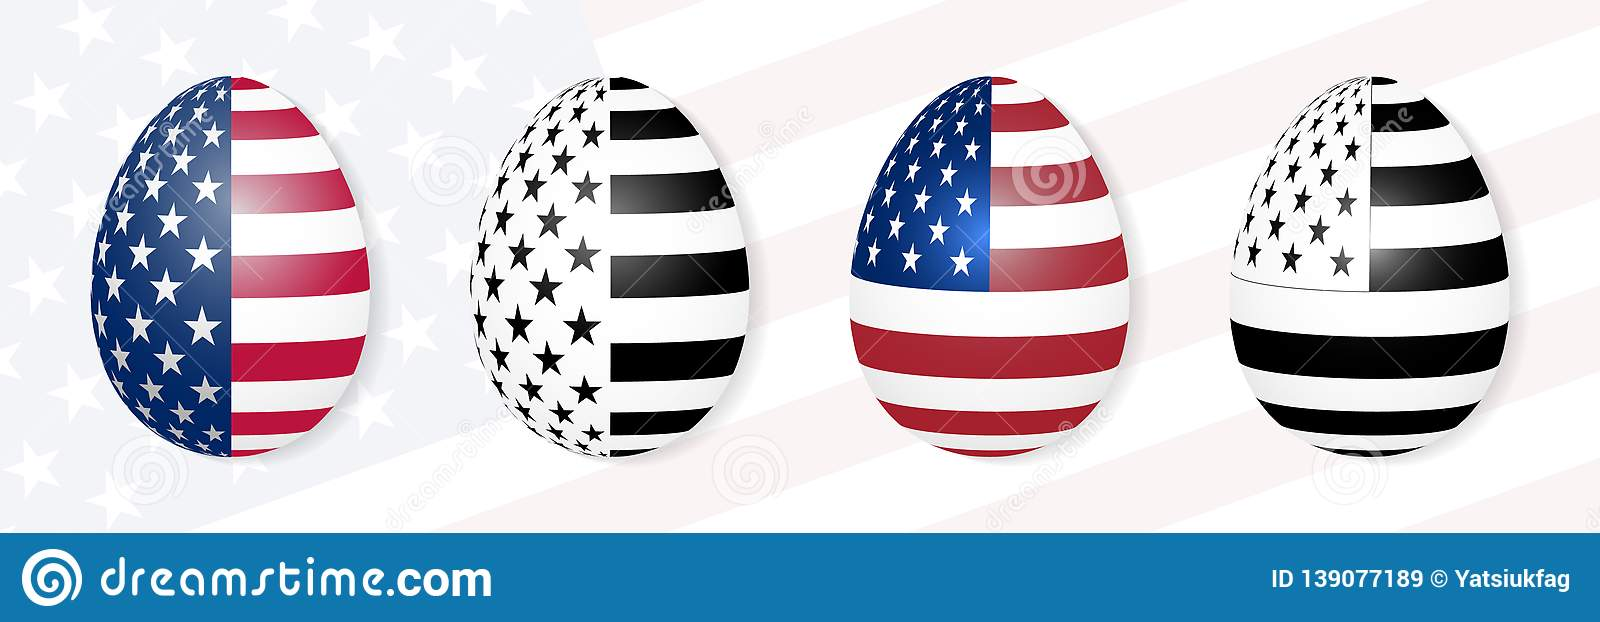 Easter Eggs On The Background Of The USA Flag. Stock Vector